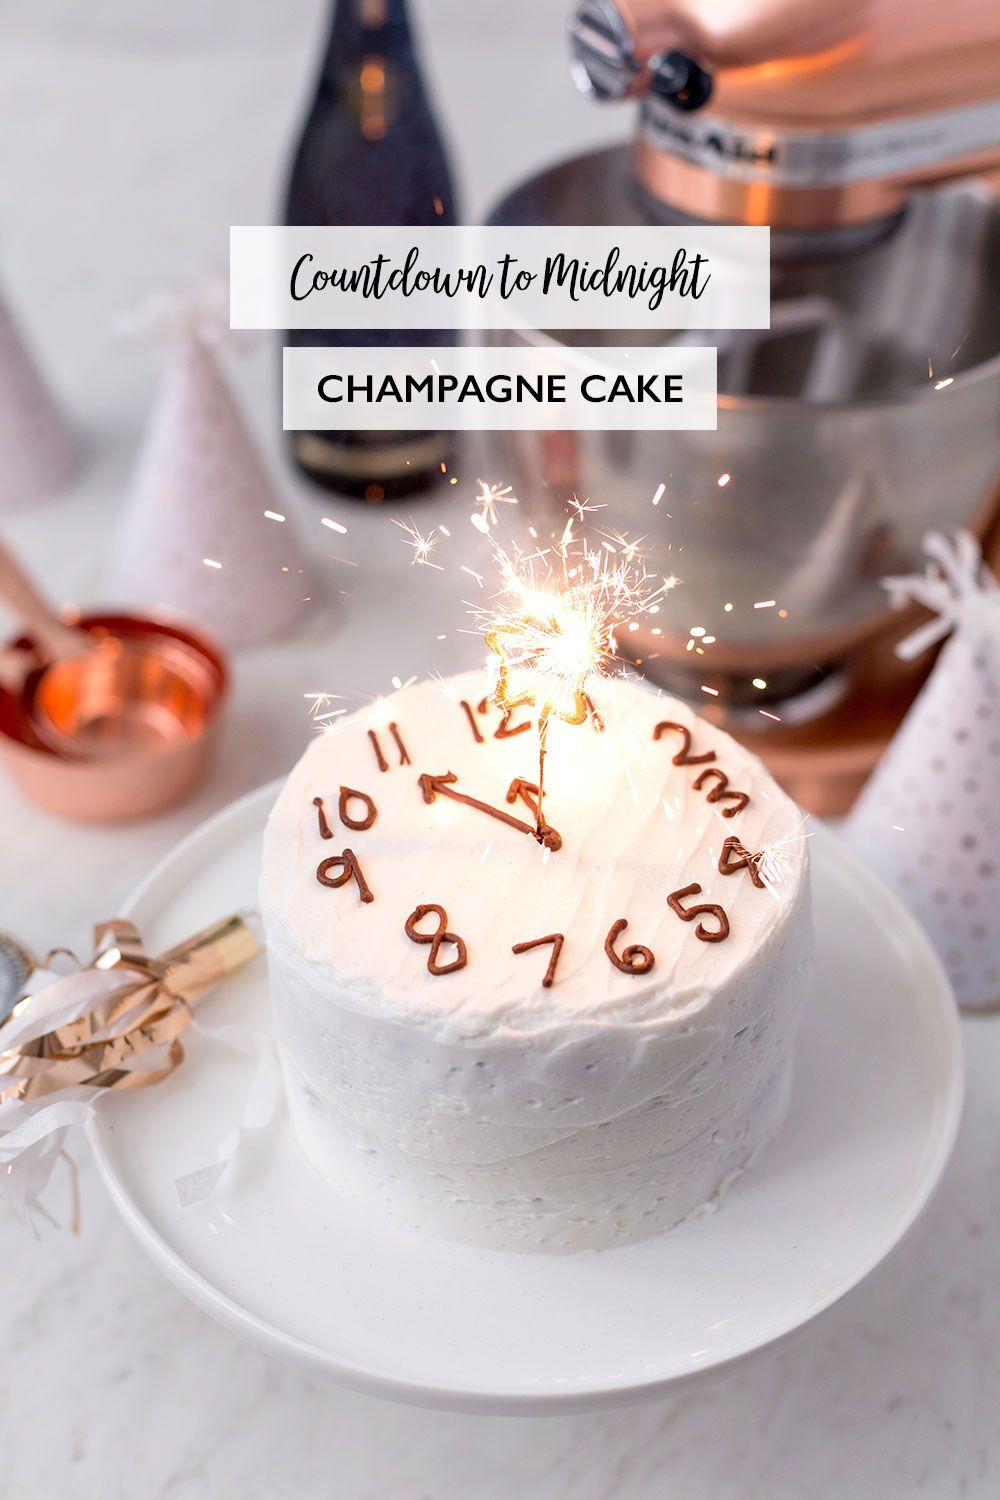 Countdown to Midnight Champagne Cake for the perfect New